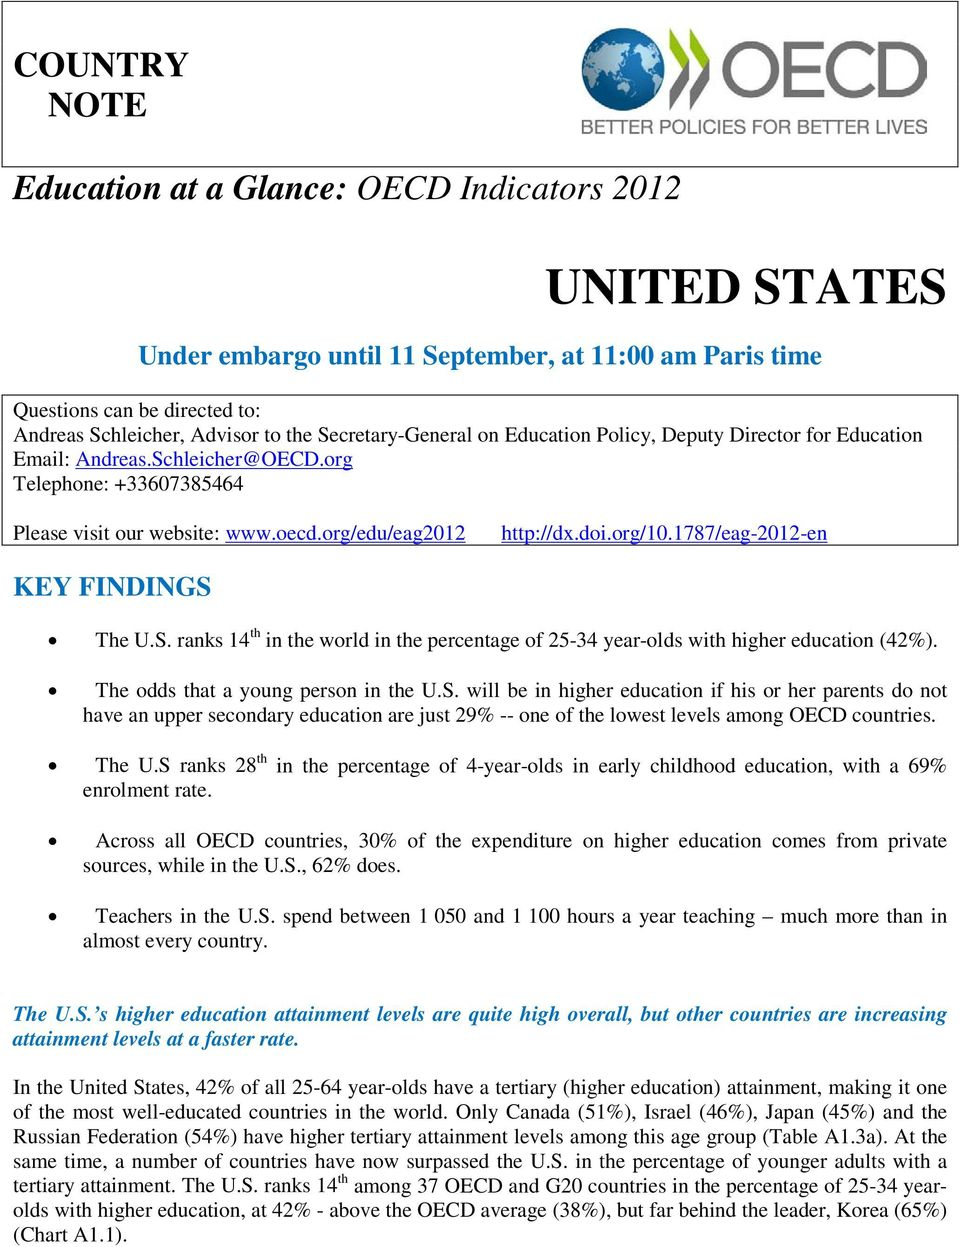 1787/eag-2012-en KEY FINDINGS The U.S. ranks 14 th in the world in the percentage of 25-34 year-olds with higher education (42%). The odds that a young person in the U.S. will be in higher education if his or her parents do not have an upper secondary education are just 29% -- one of the lowest levels among OECD countries.